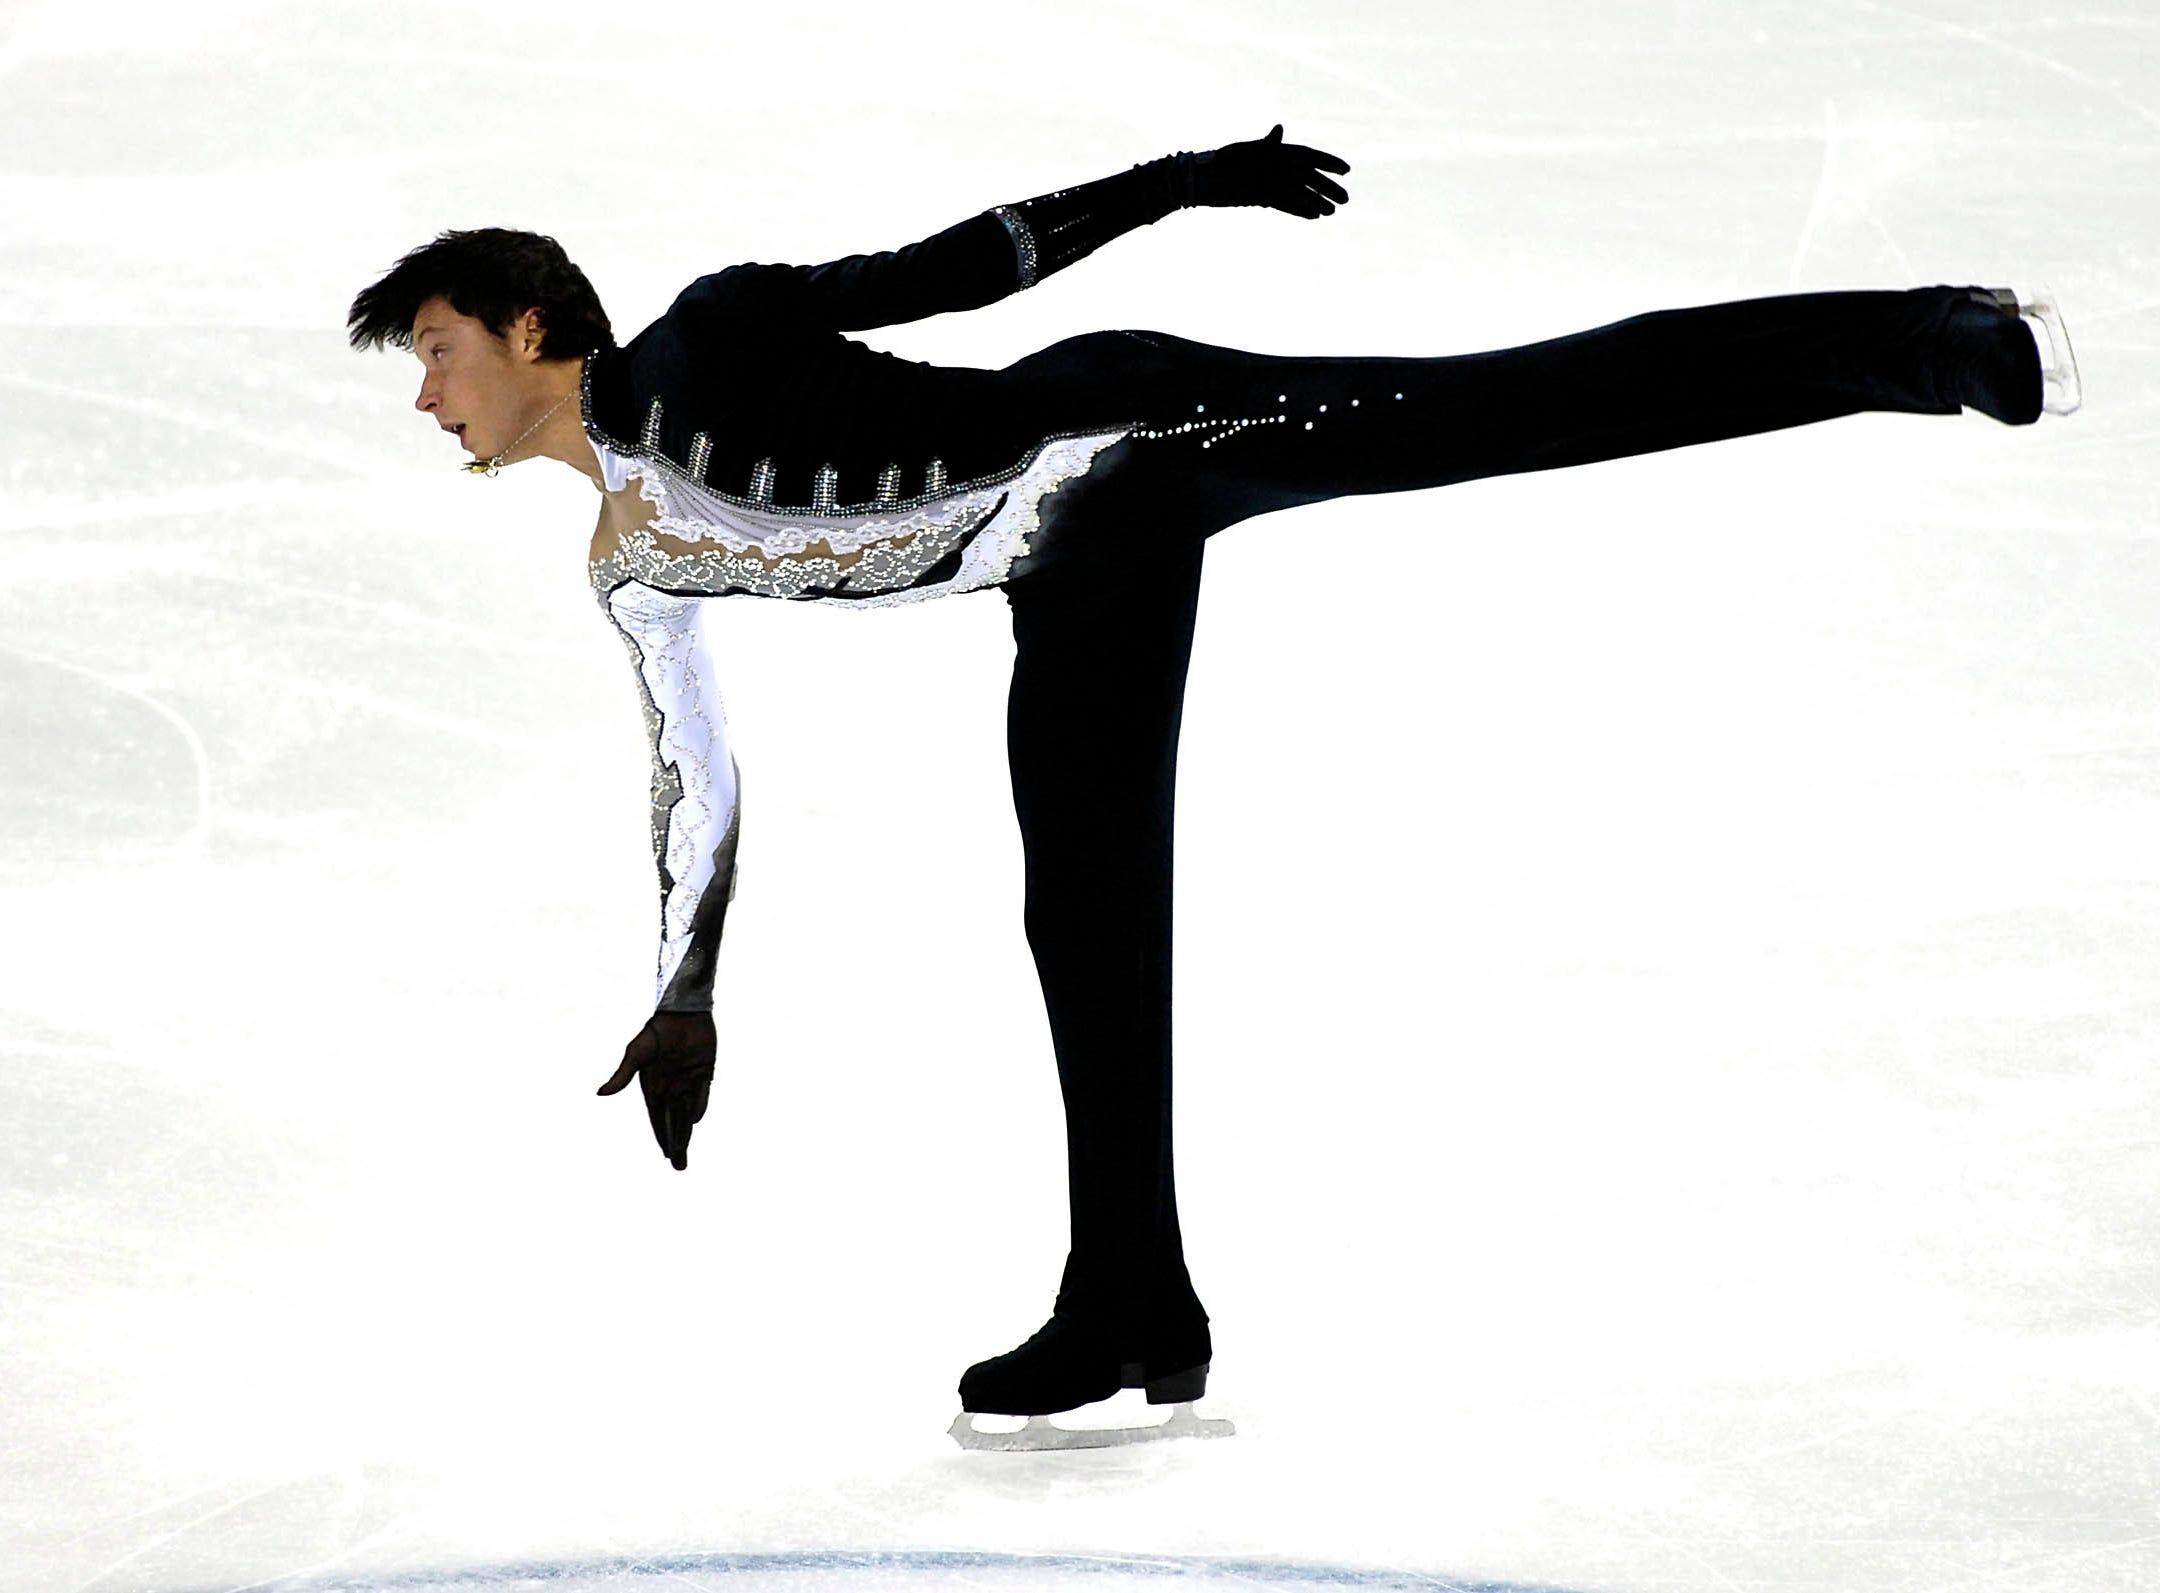 Johnny Weir of the United States, performs during the Ice Men short program of the Figure Skating final 2007 at the Palavela in Turin, Italy, Friday, Dec. 14, 2007.